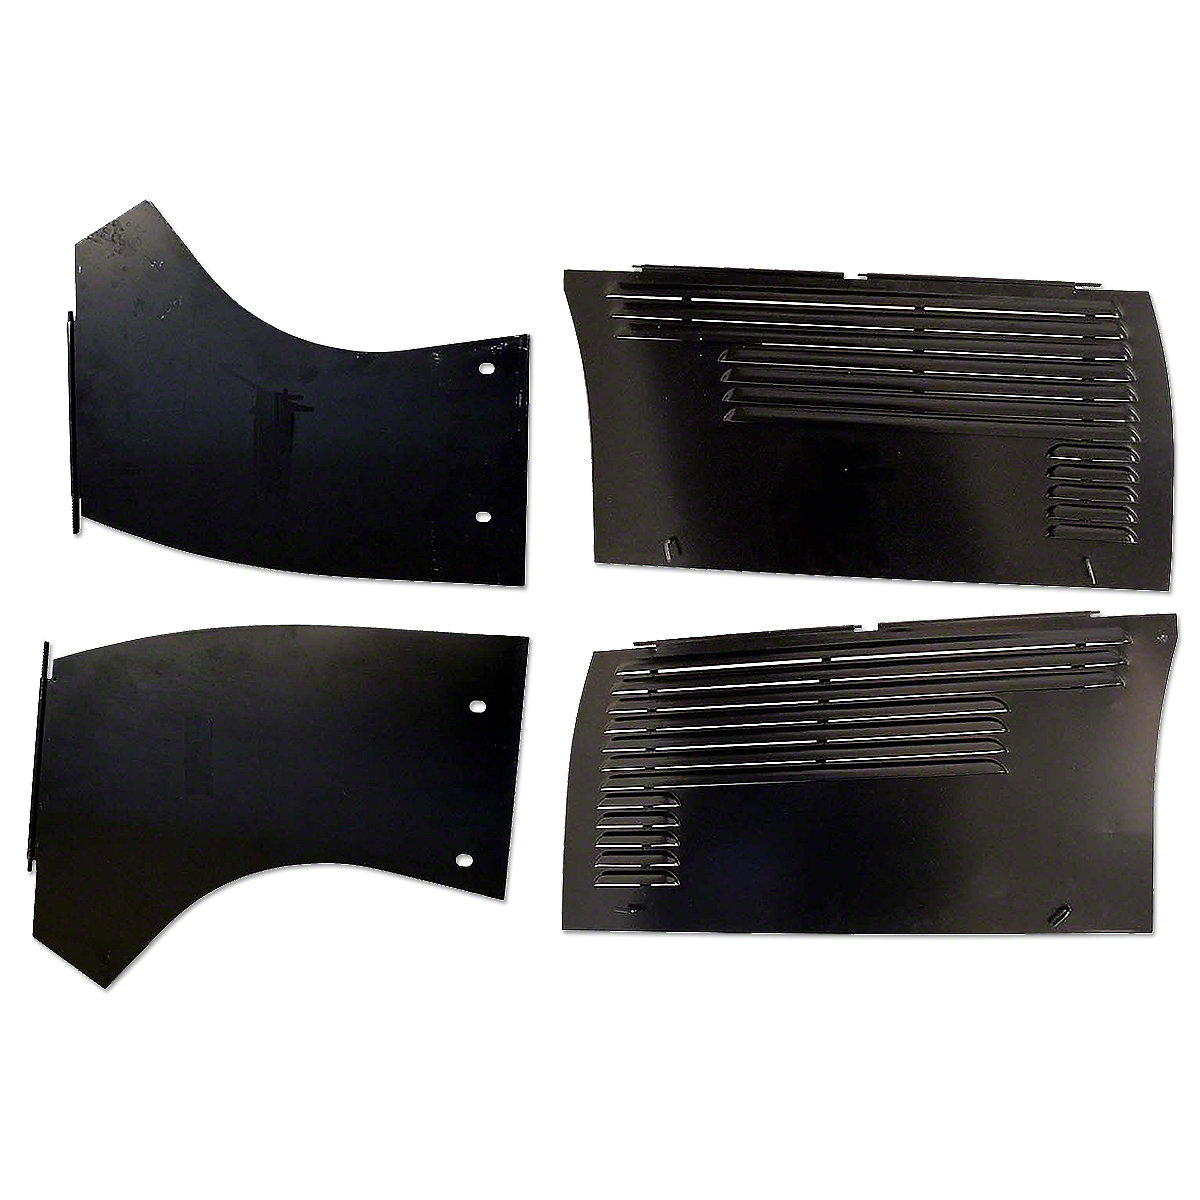 4 Piece Engine Panel Set For Oliver: 60 Standard.